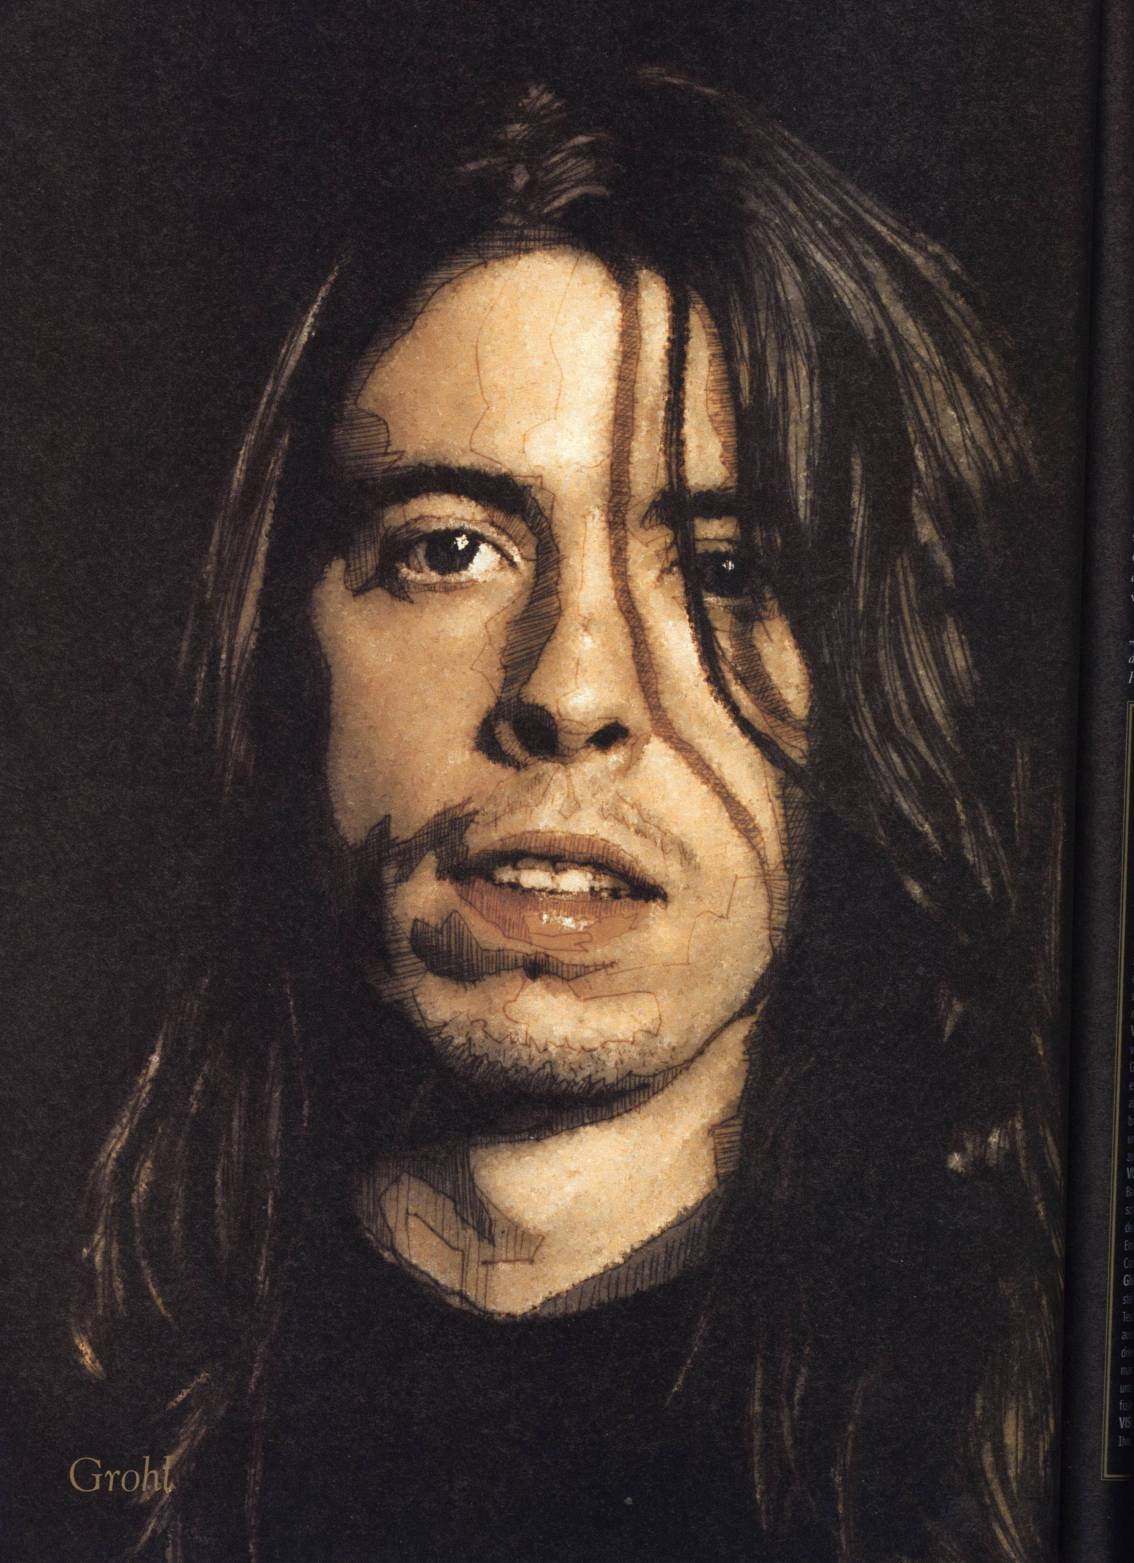 Thumbnail of Dave Grohl photo #562405